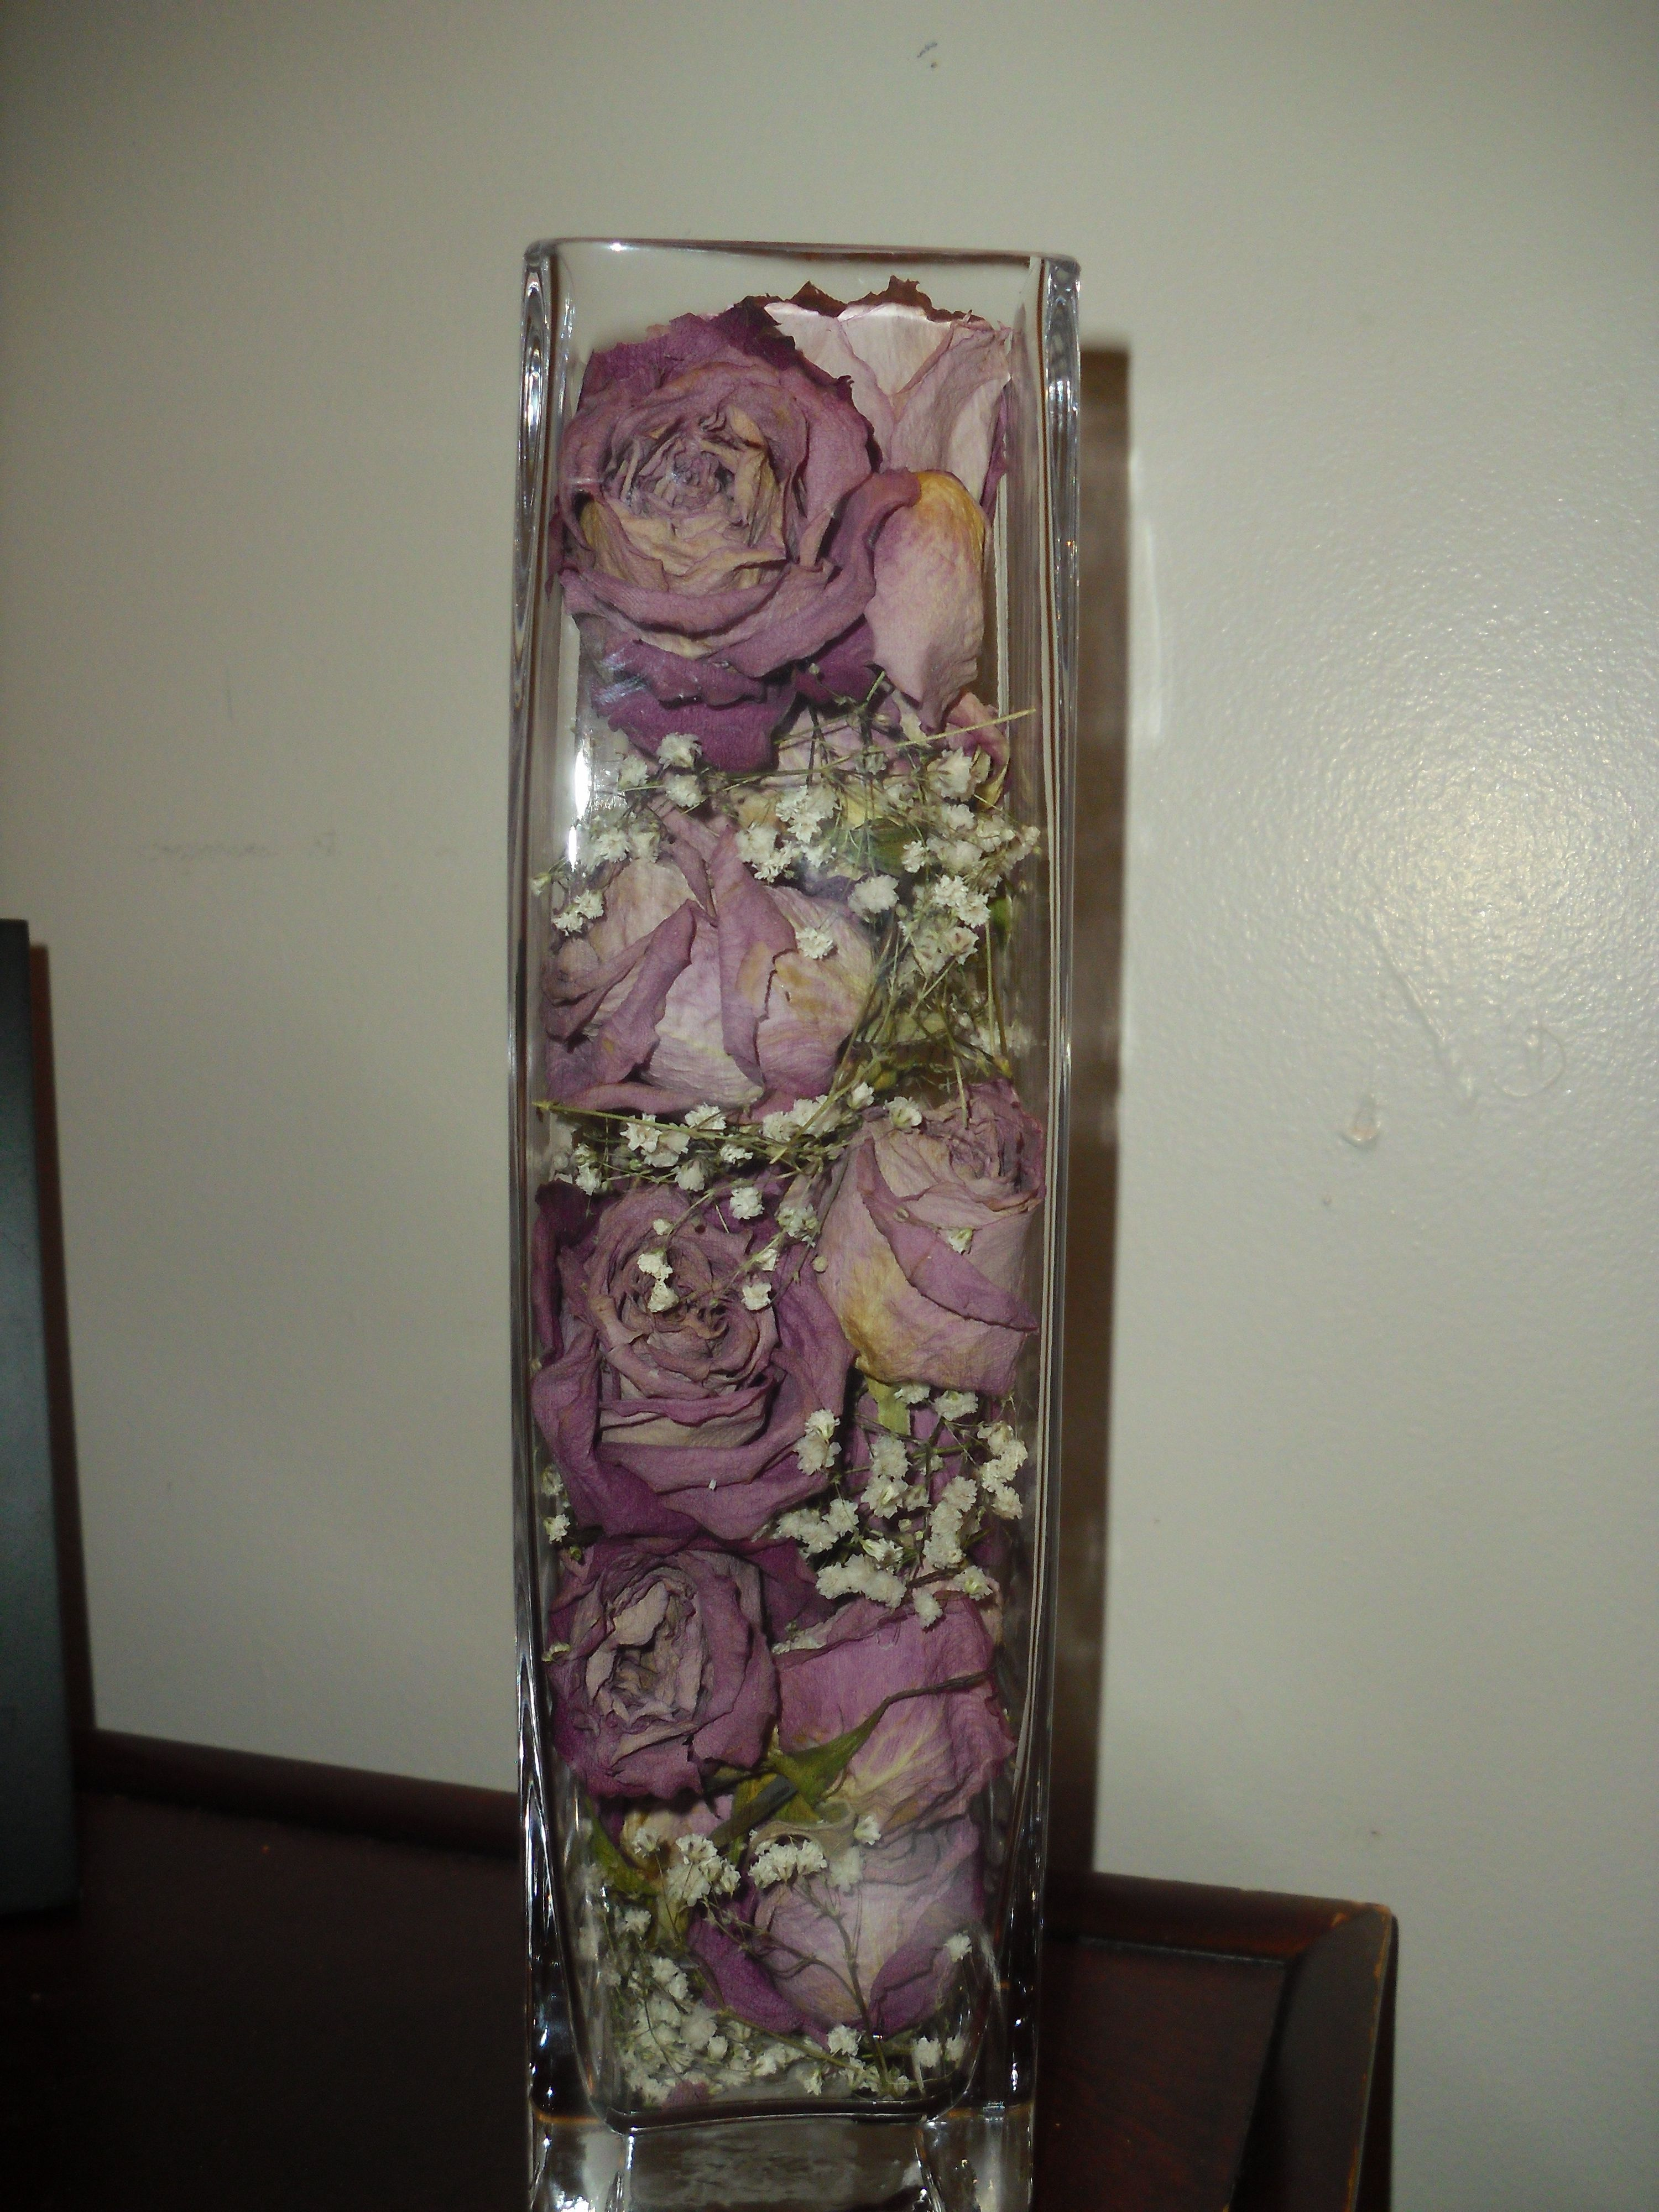 i dried roses and baby 39 s breath i used an old vase and organized them for a center piece that. Black Bedroom Furniture Sets. Home Design Ideas